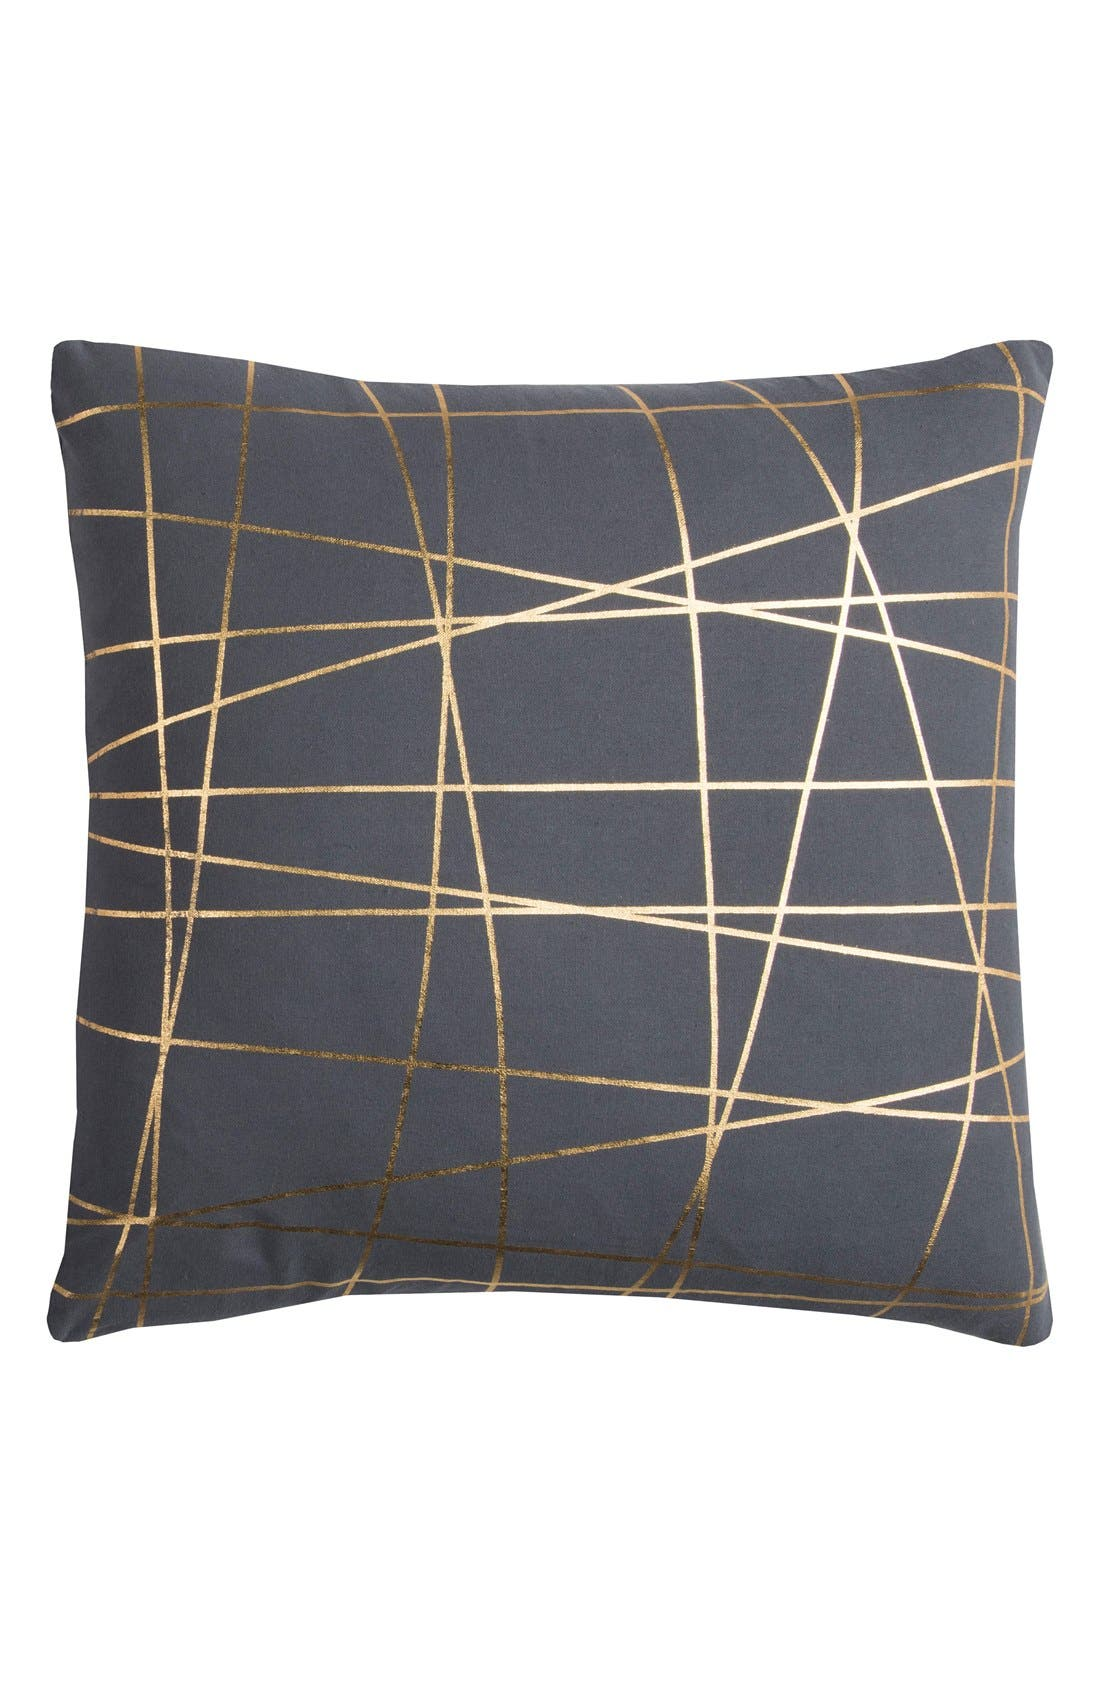 Metallic Lines Accent Pillow,                             Main thumbnail 1, color,                             020